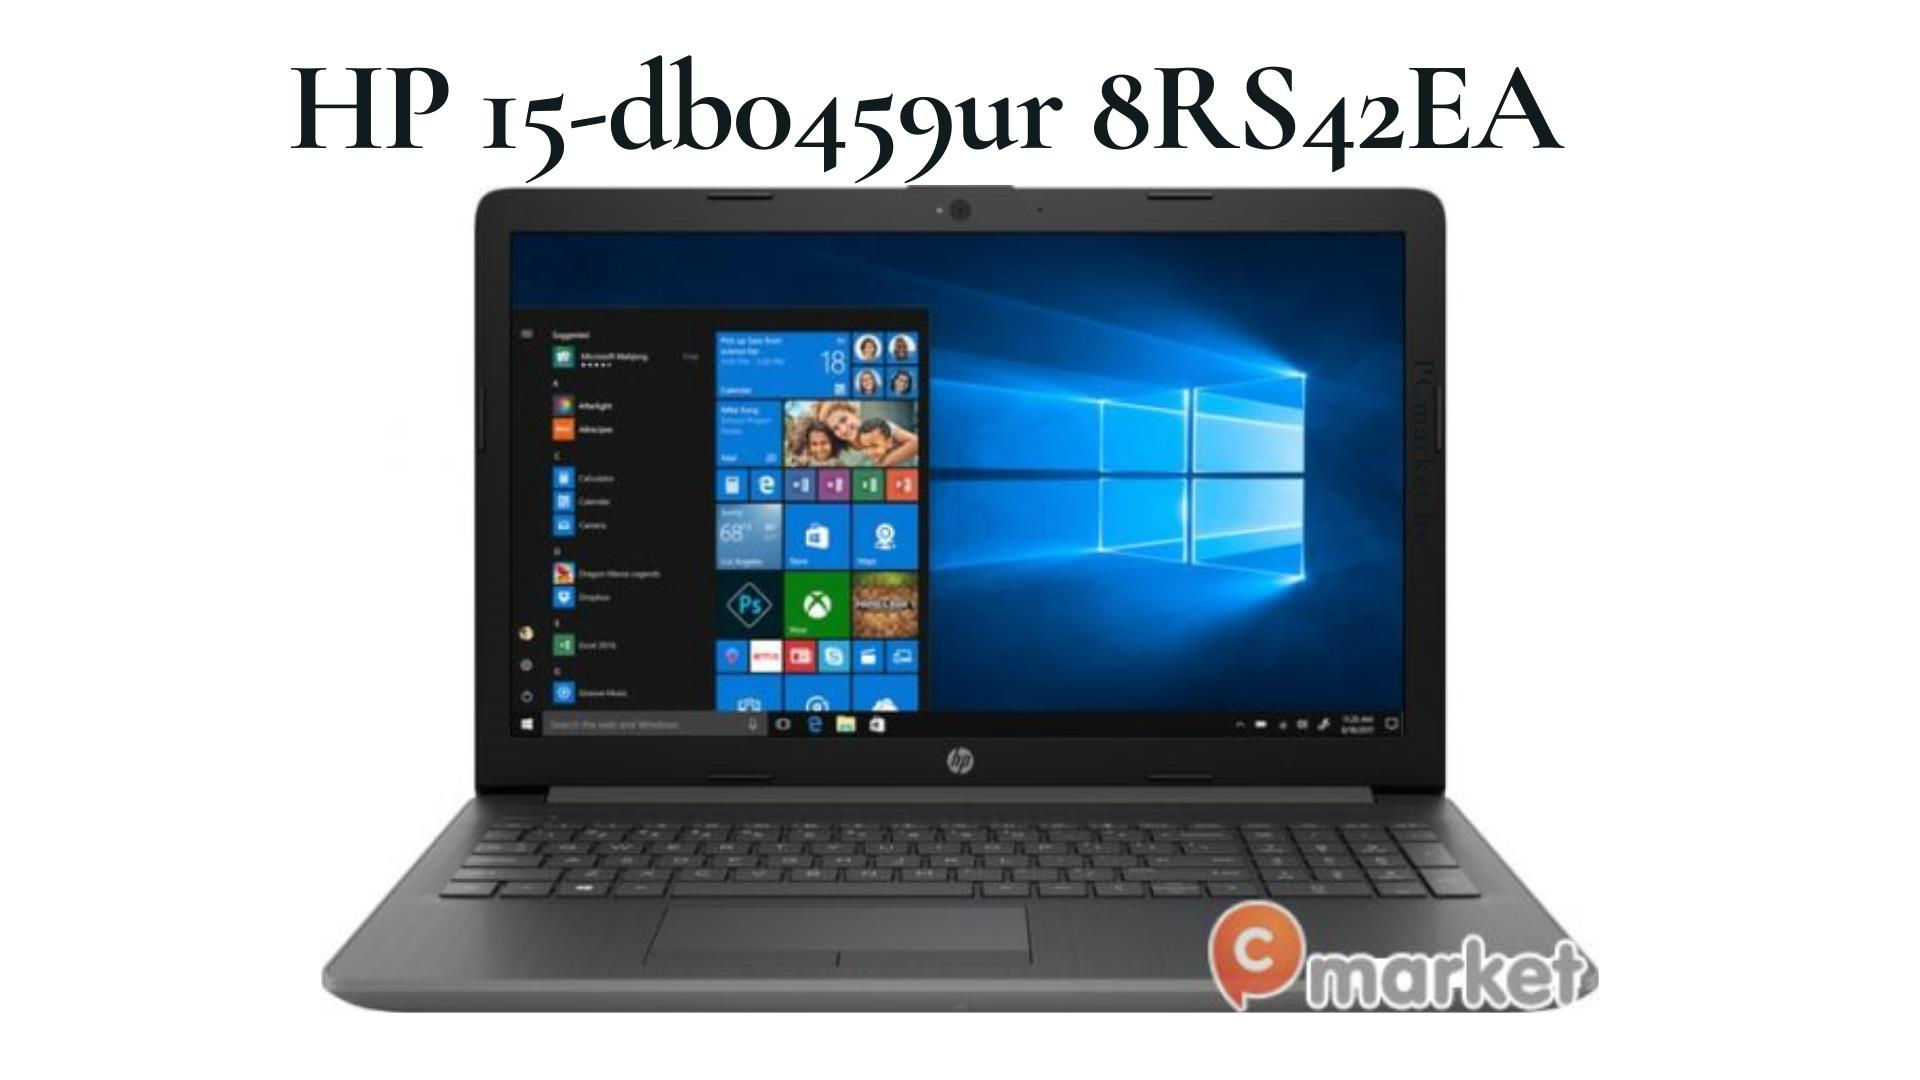 Ноутбук HP 15-db0459ur 8RS42EA